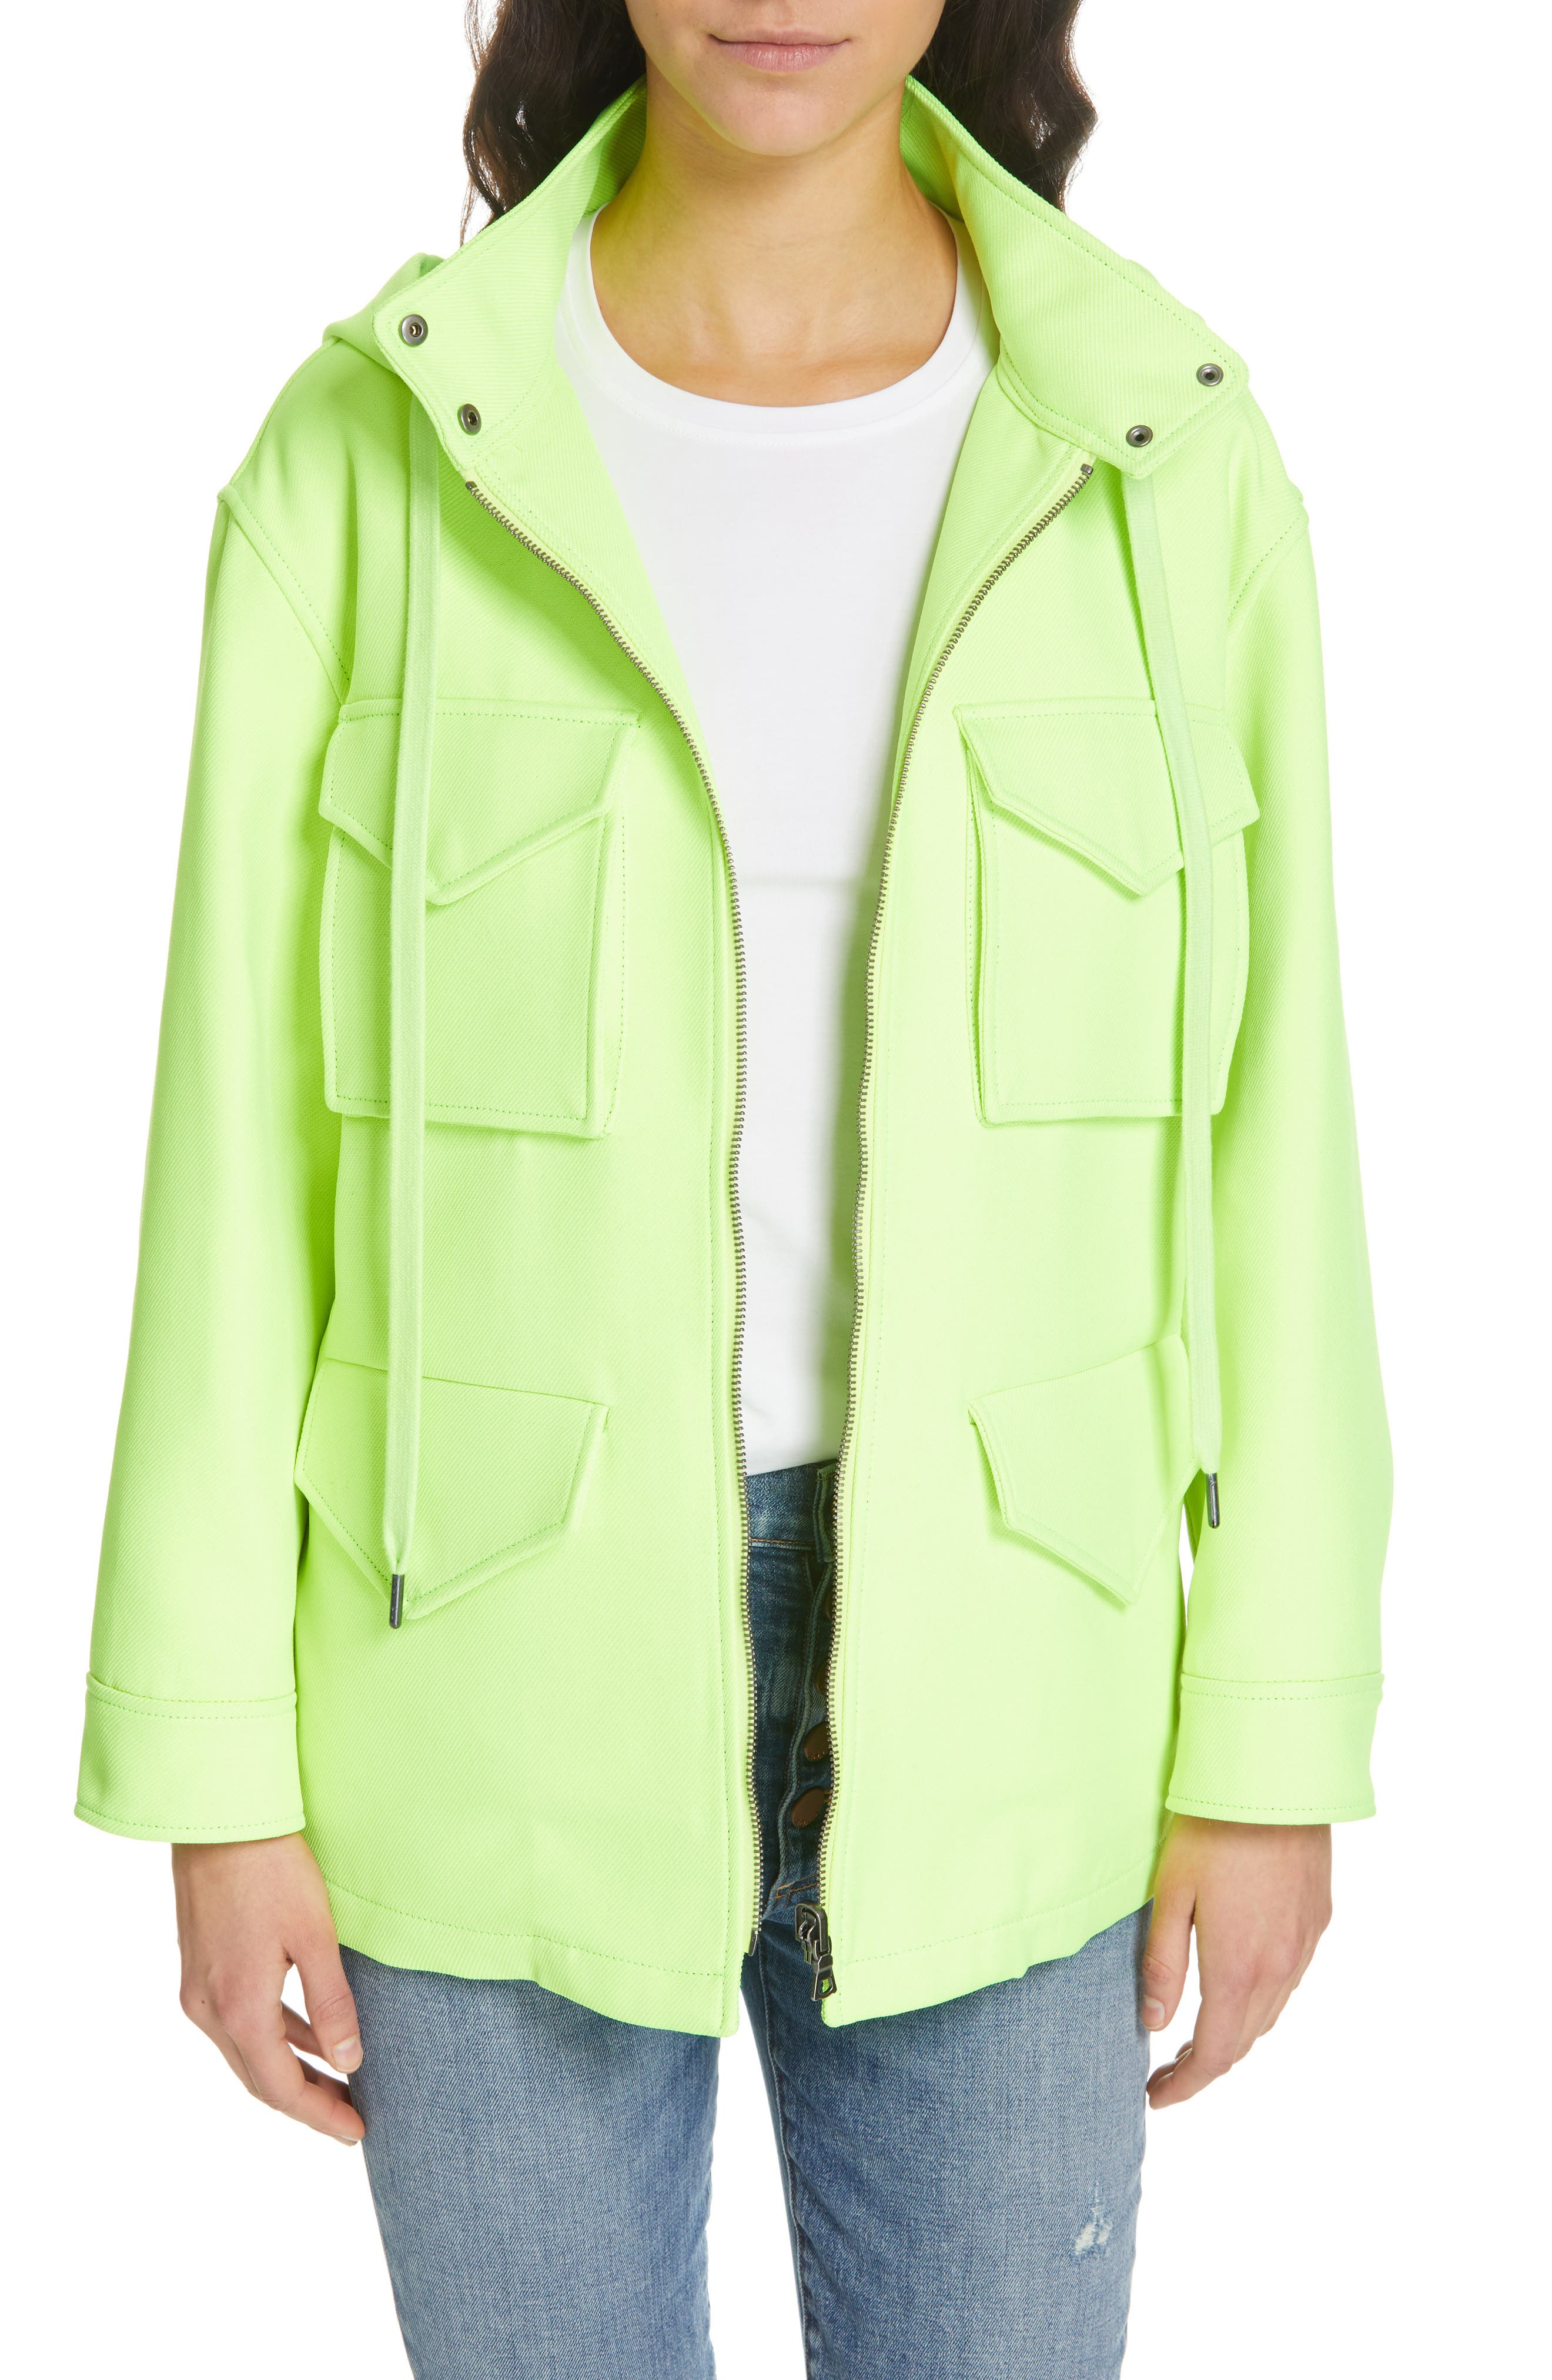 ALICE + OLIVIA,                             Russo Hooded Jacket,                             Main thumbnail 1, color,                             NEON YELLOW